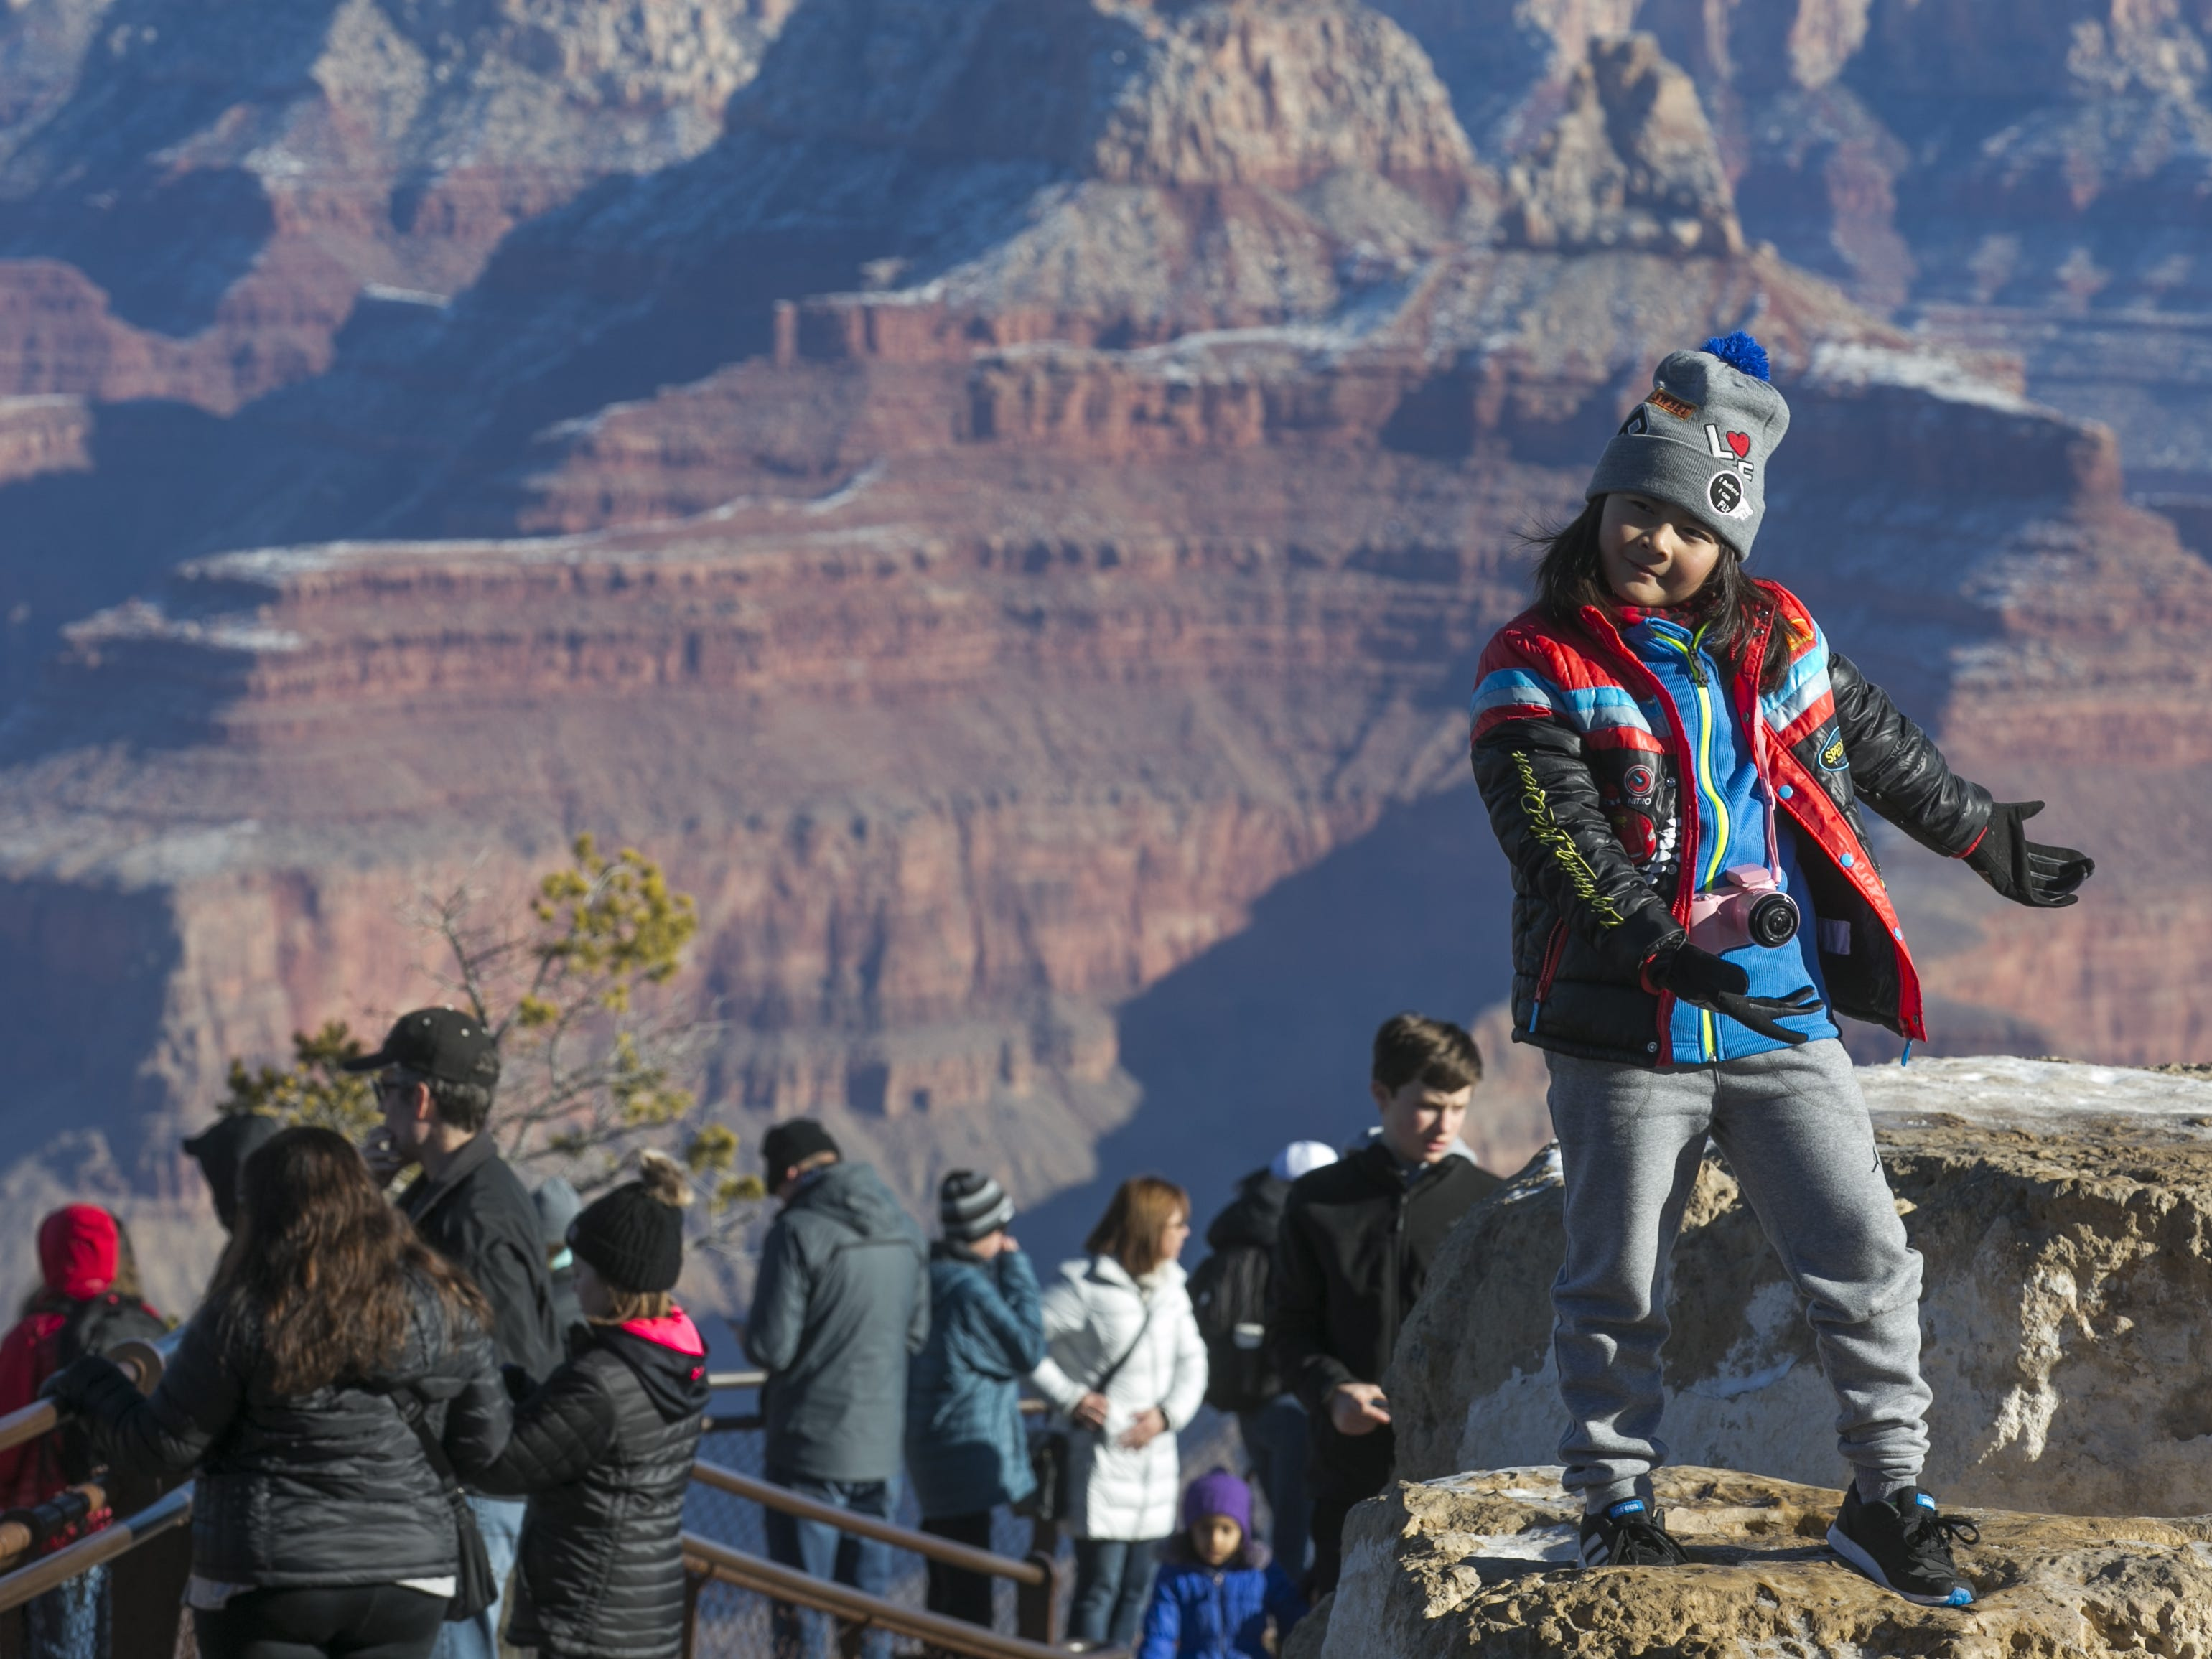 Dylan La, 9, poses for a photo at Grand Canyon National Park.